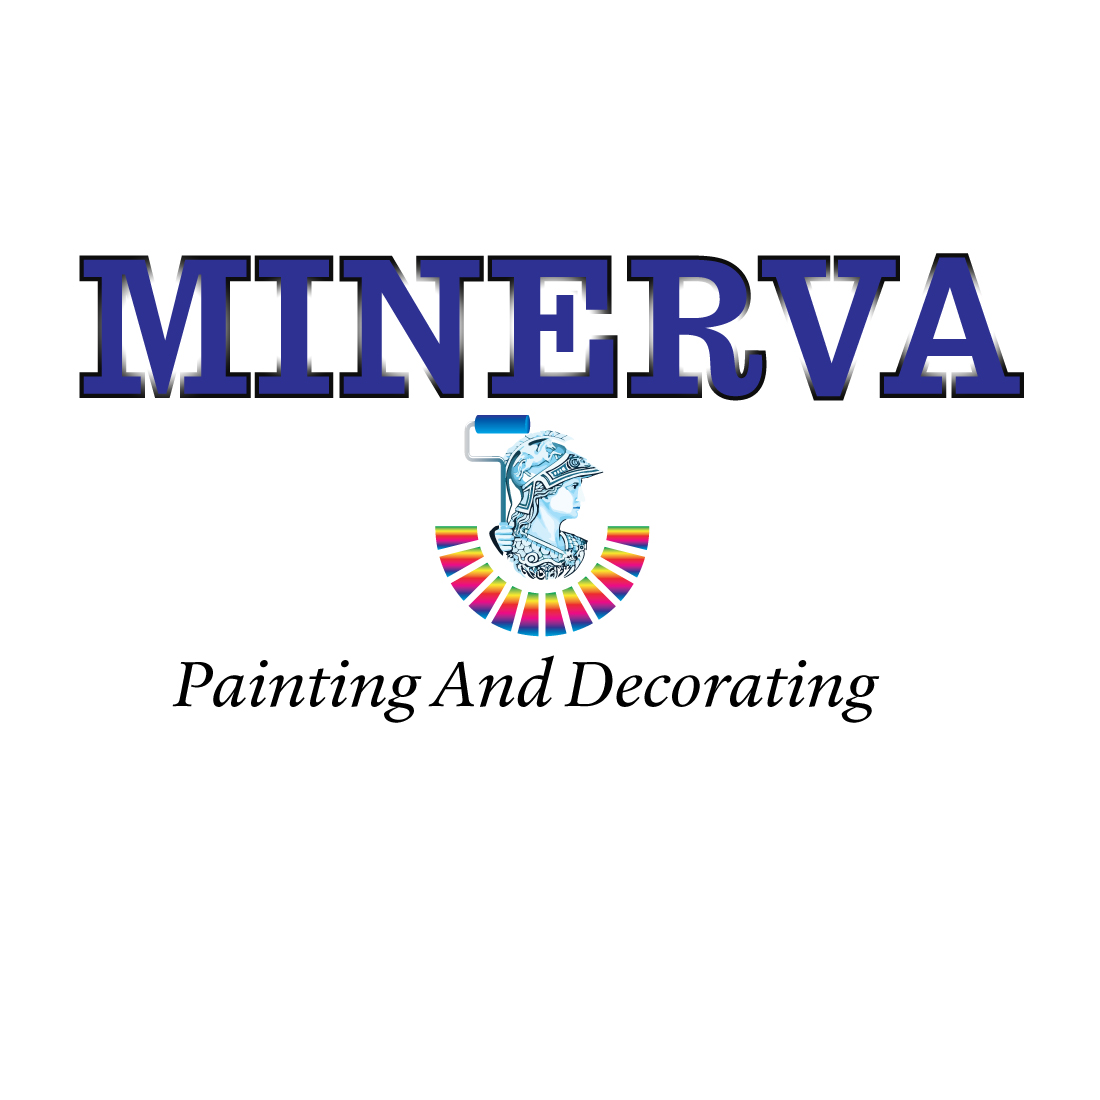 Logo Design by Dan Cristian - Entry No. 64 in the Logo Design Contest New Logo Design for Minerva Painting & Decorating Ltd..